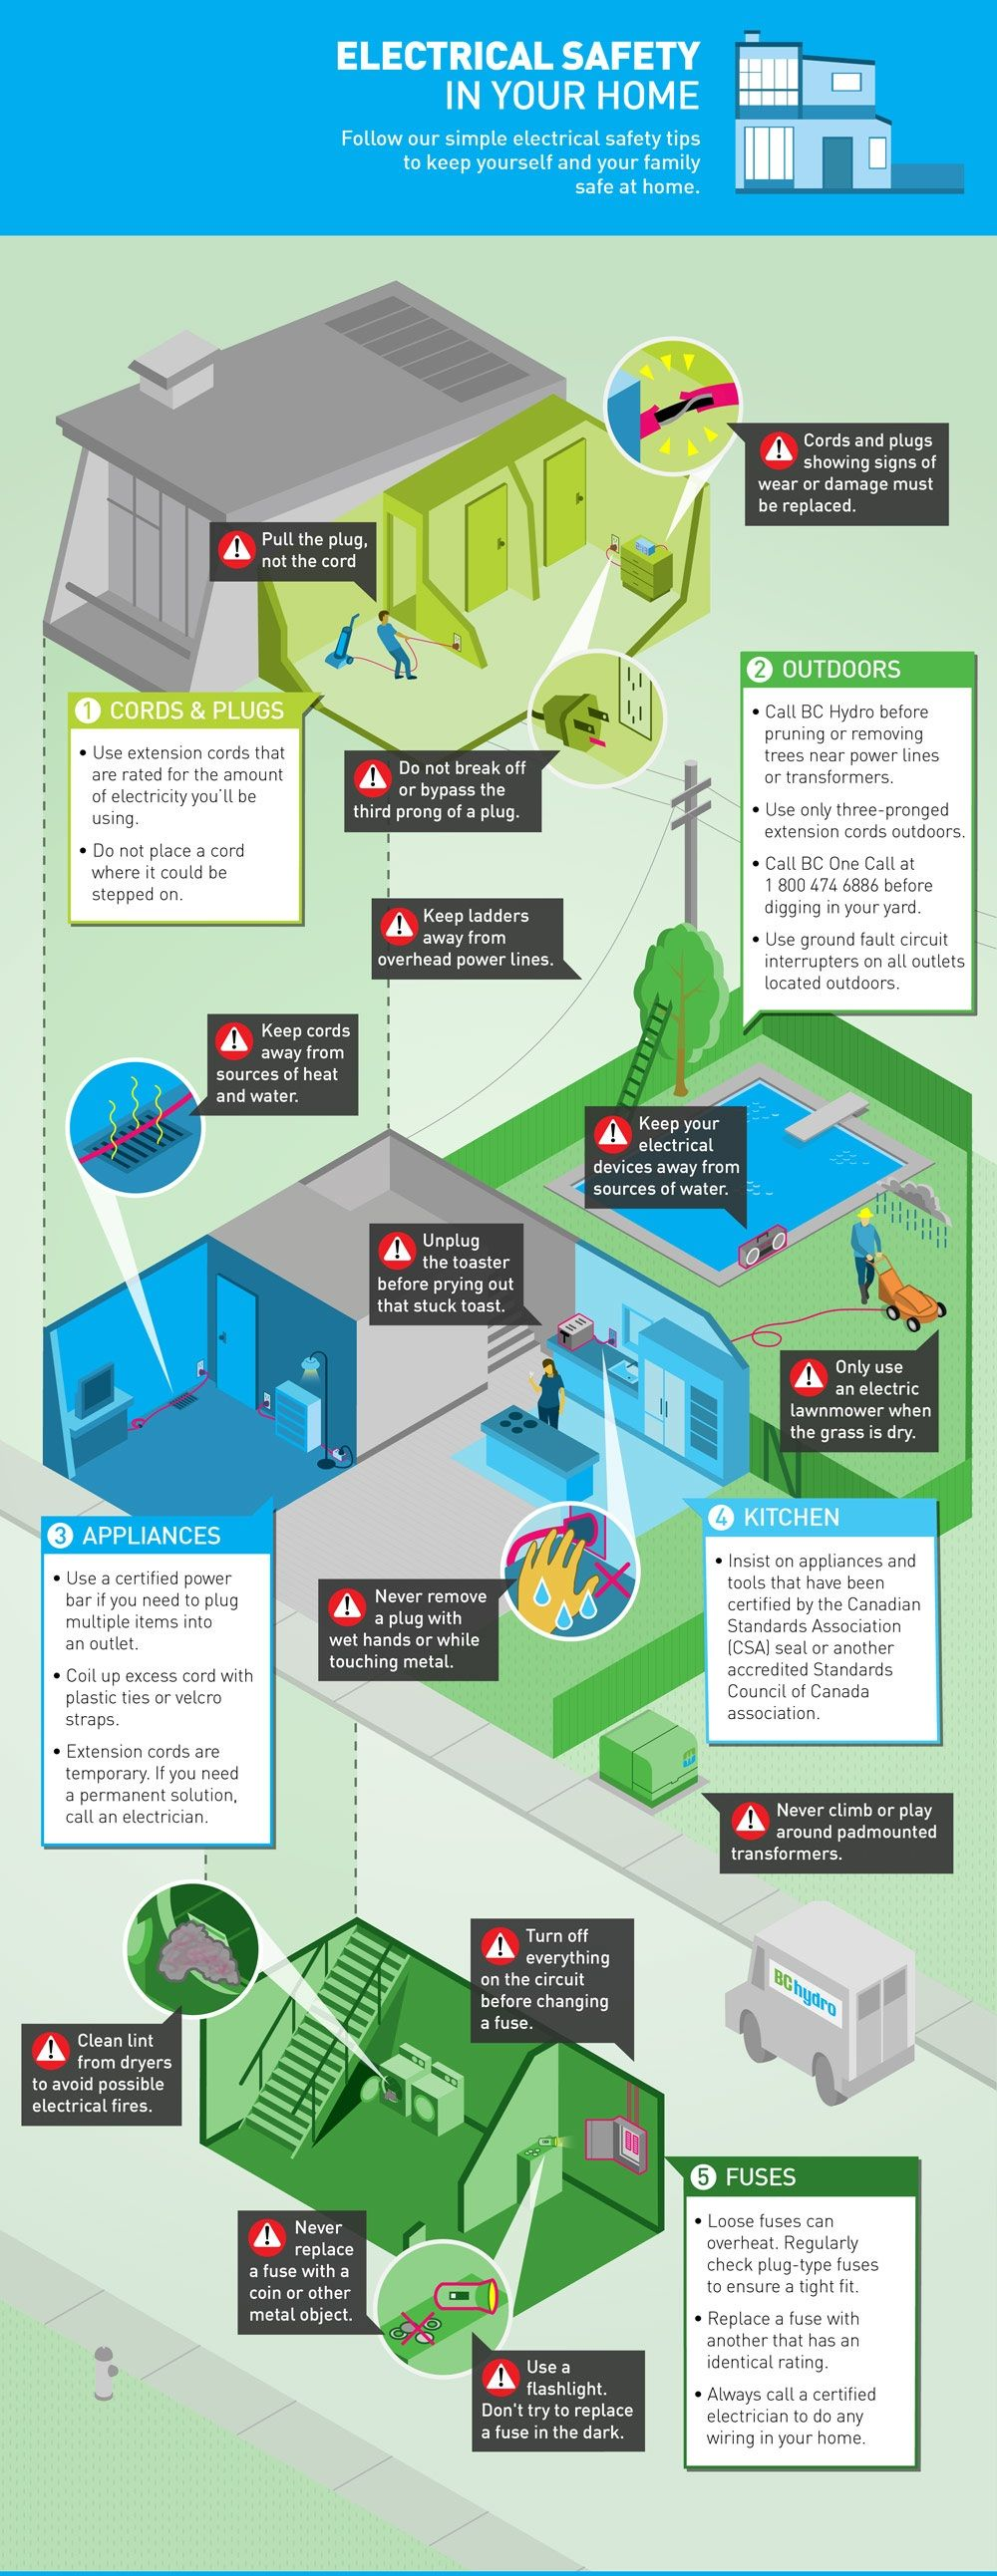 Follow The Simple Electrical Safety Tips To Keep Yourself